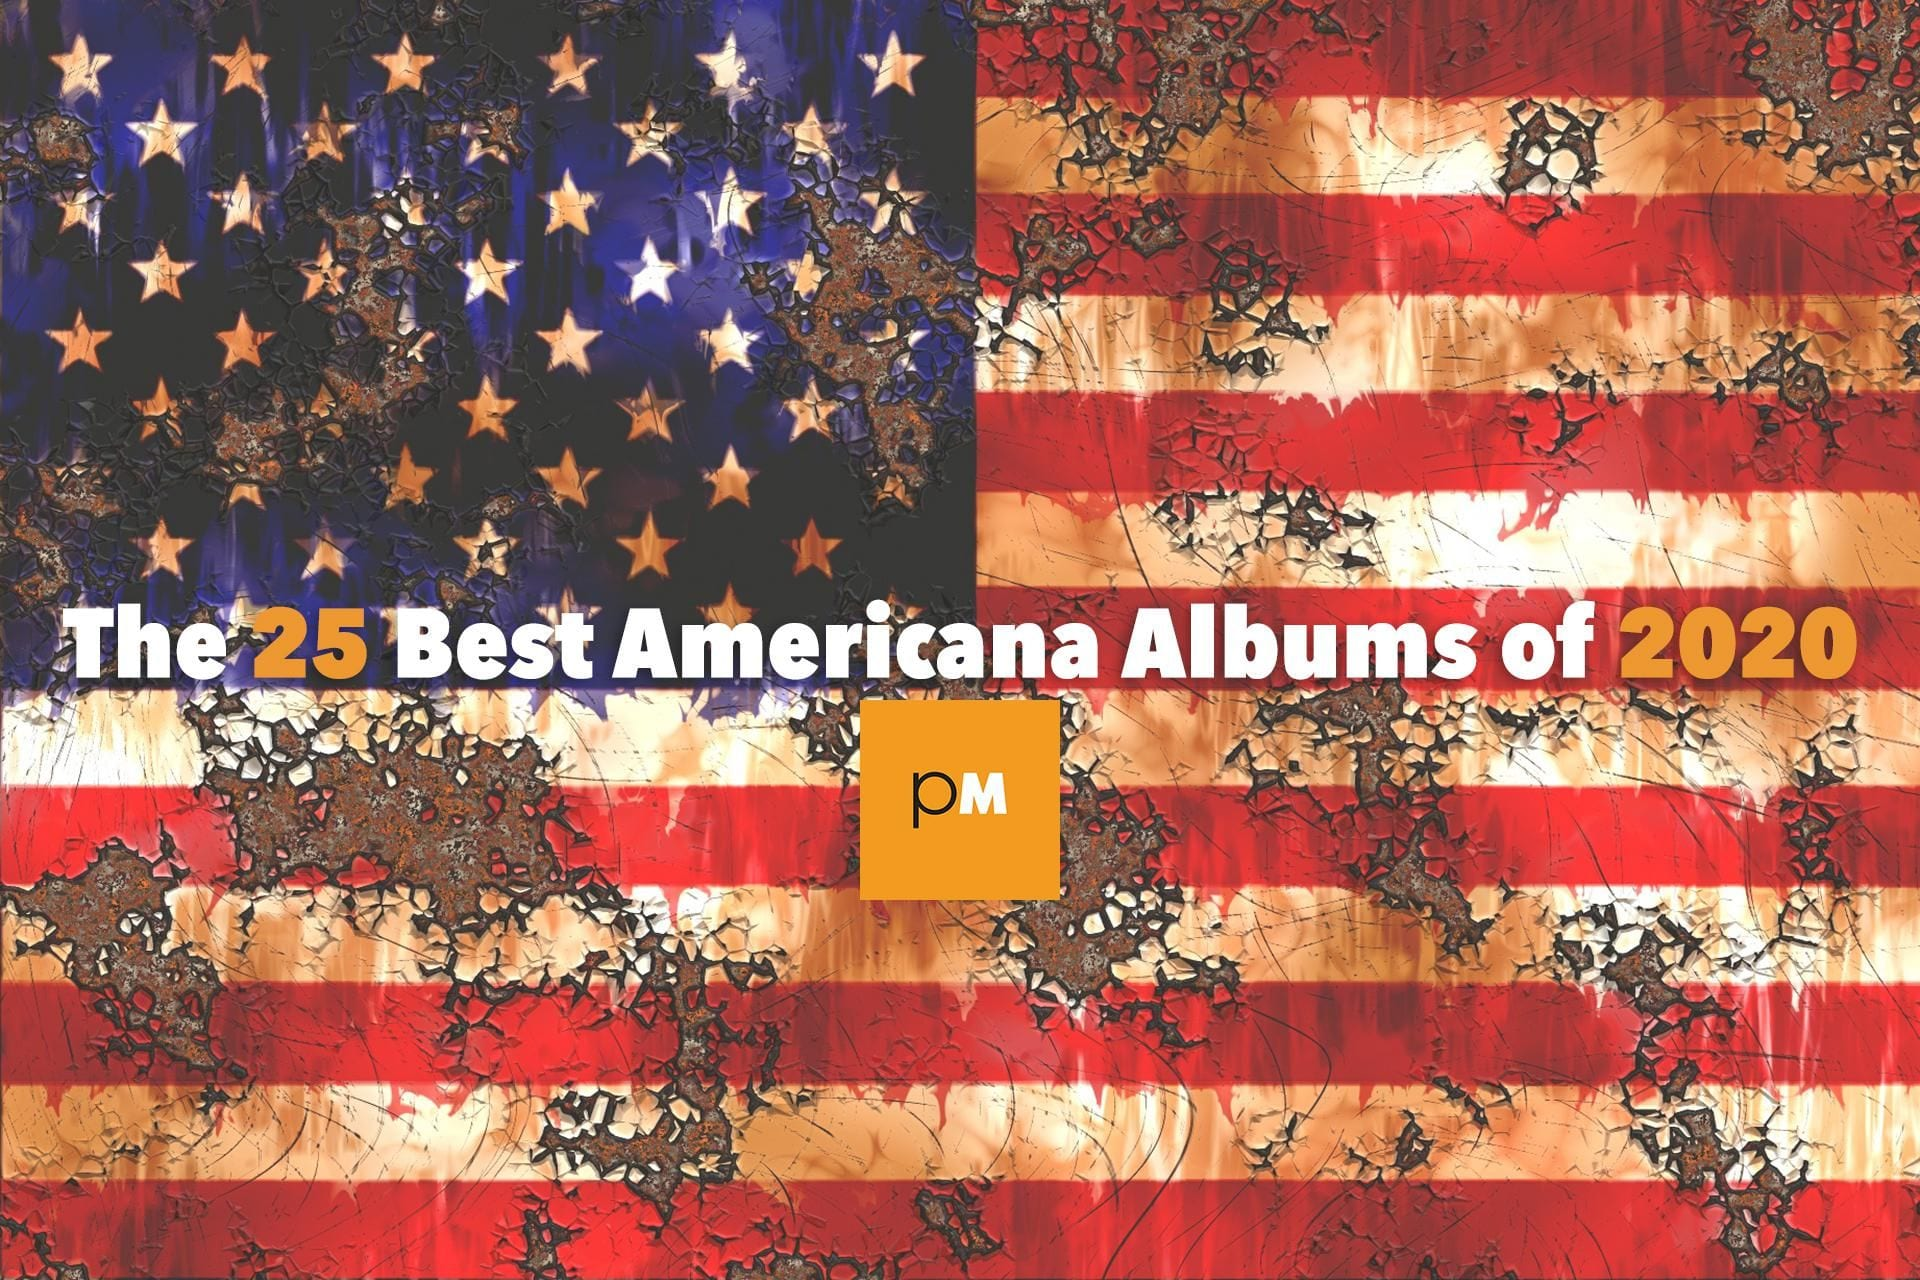 The 25 Best Americana Albums of 2020